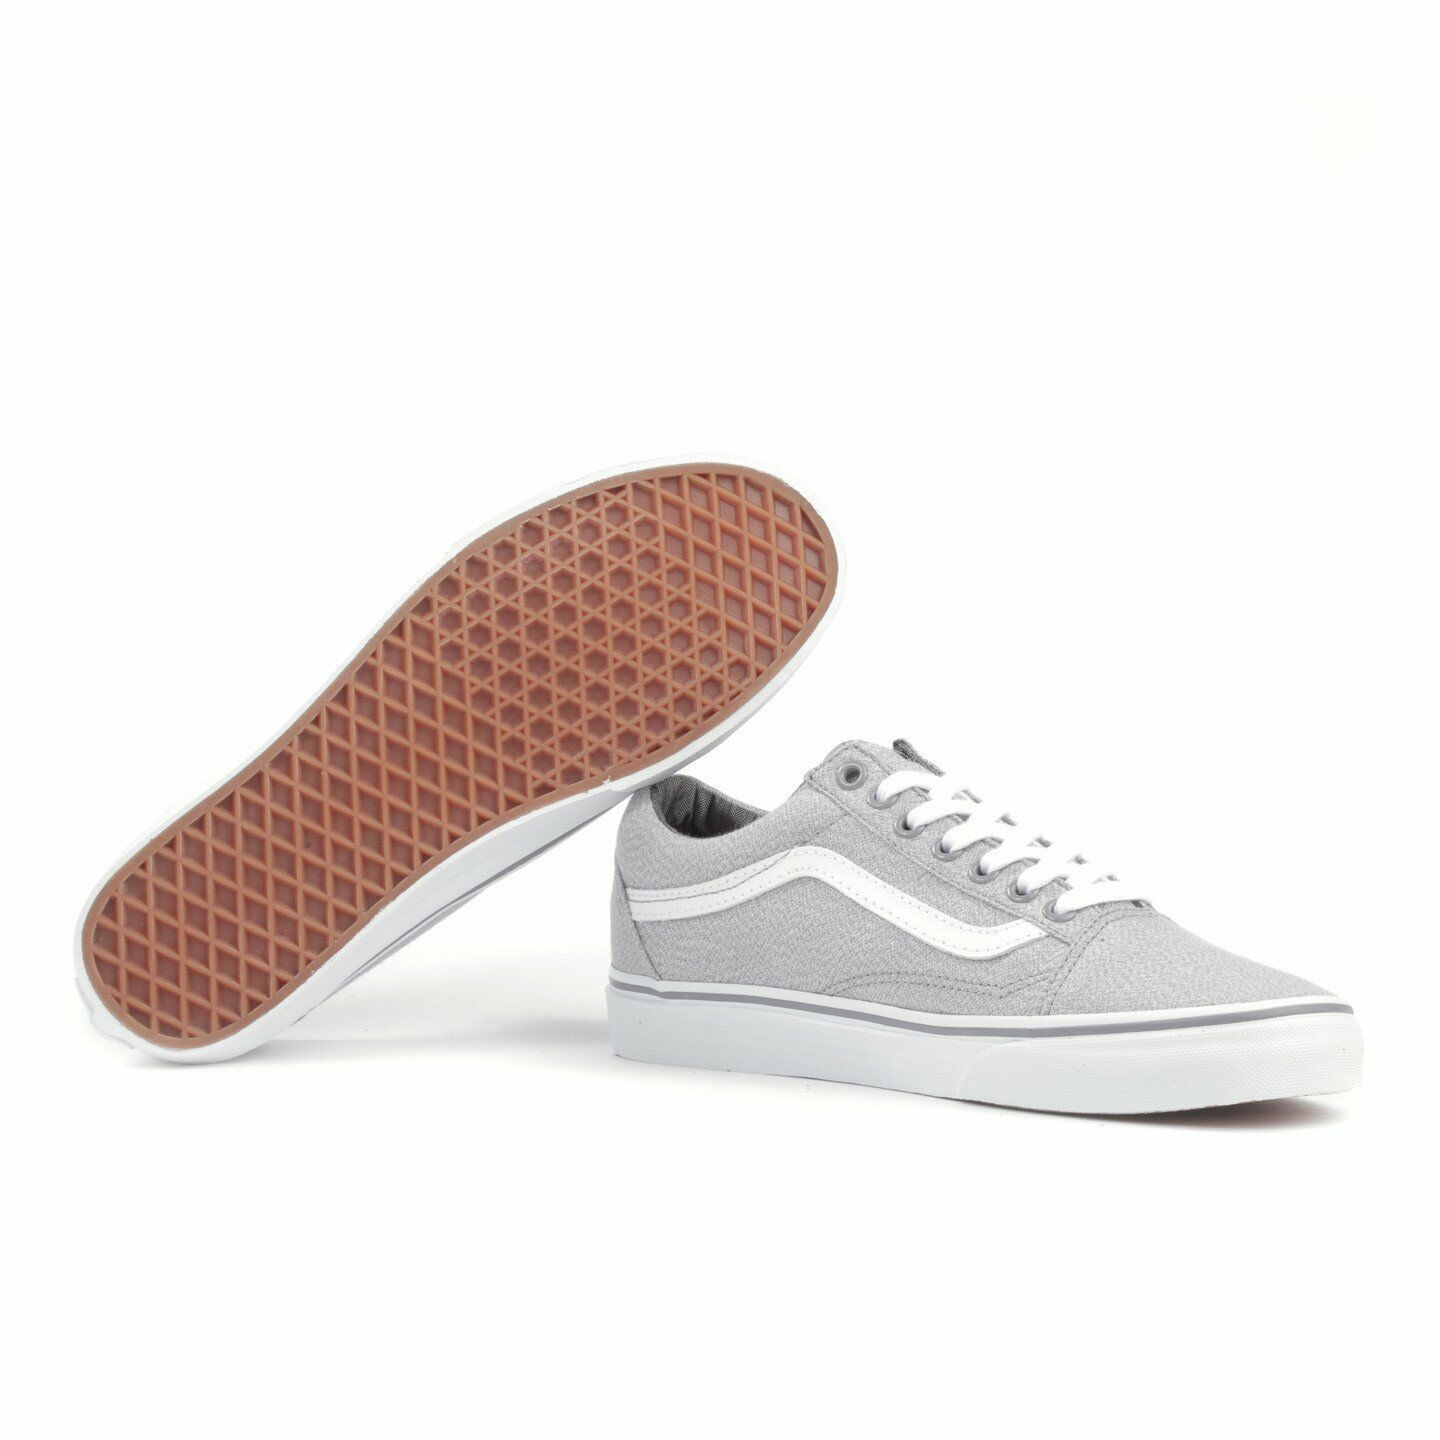 Vans Old Skool Suiting Frost VN0A38G1MVB Brand New MSRP 60